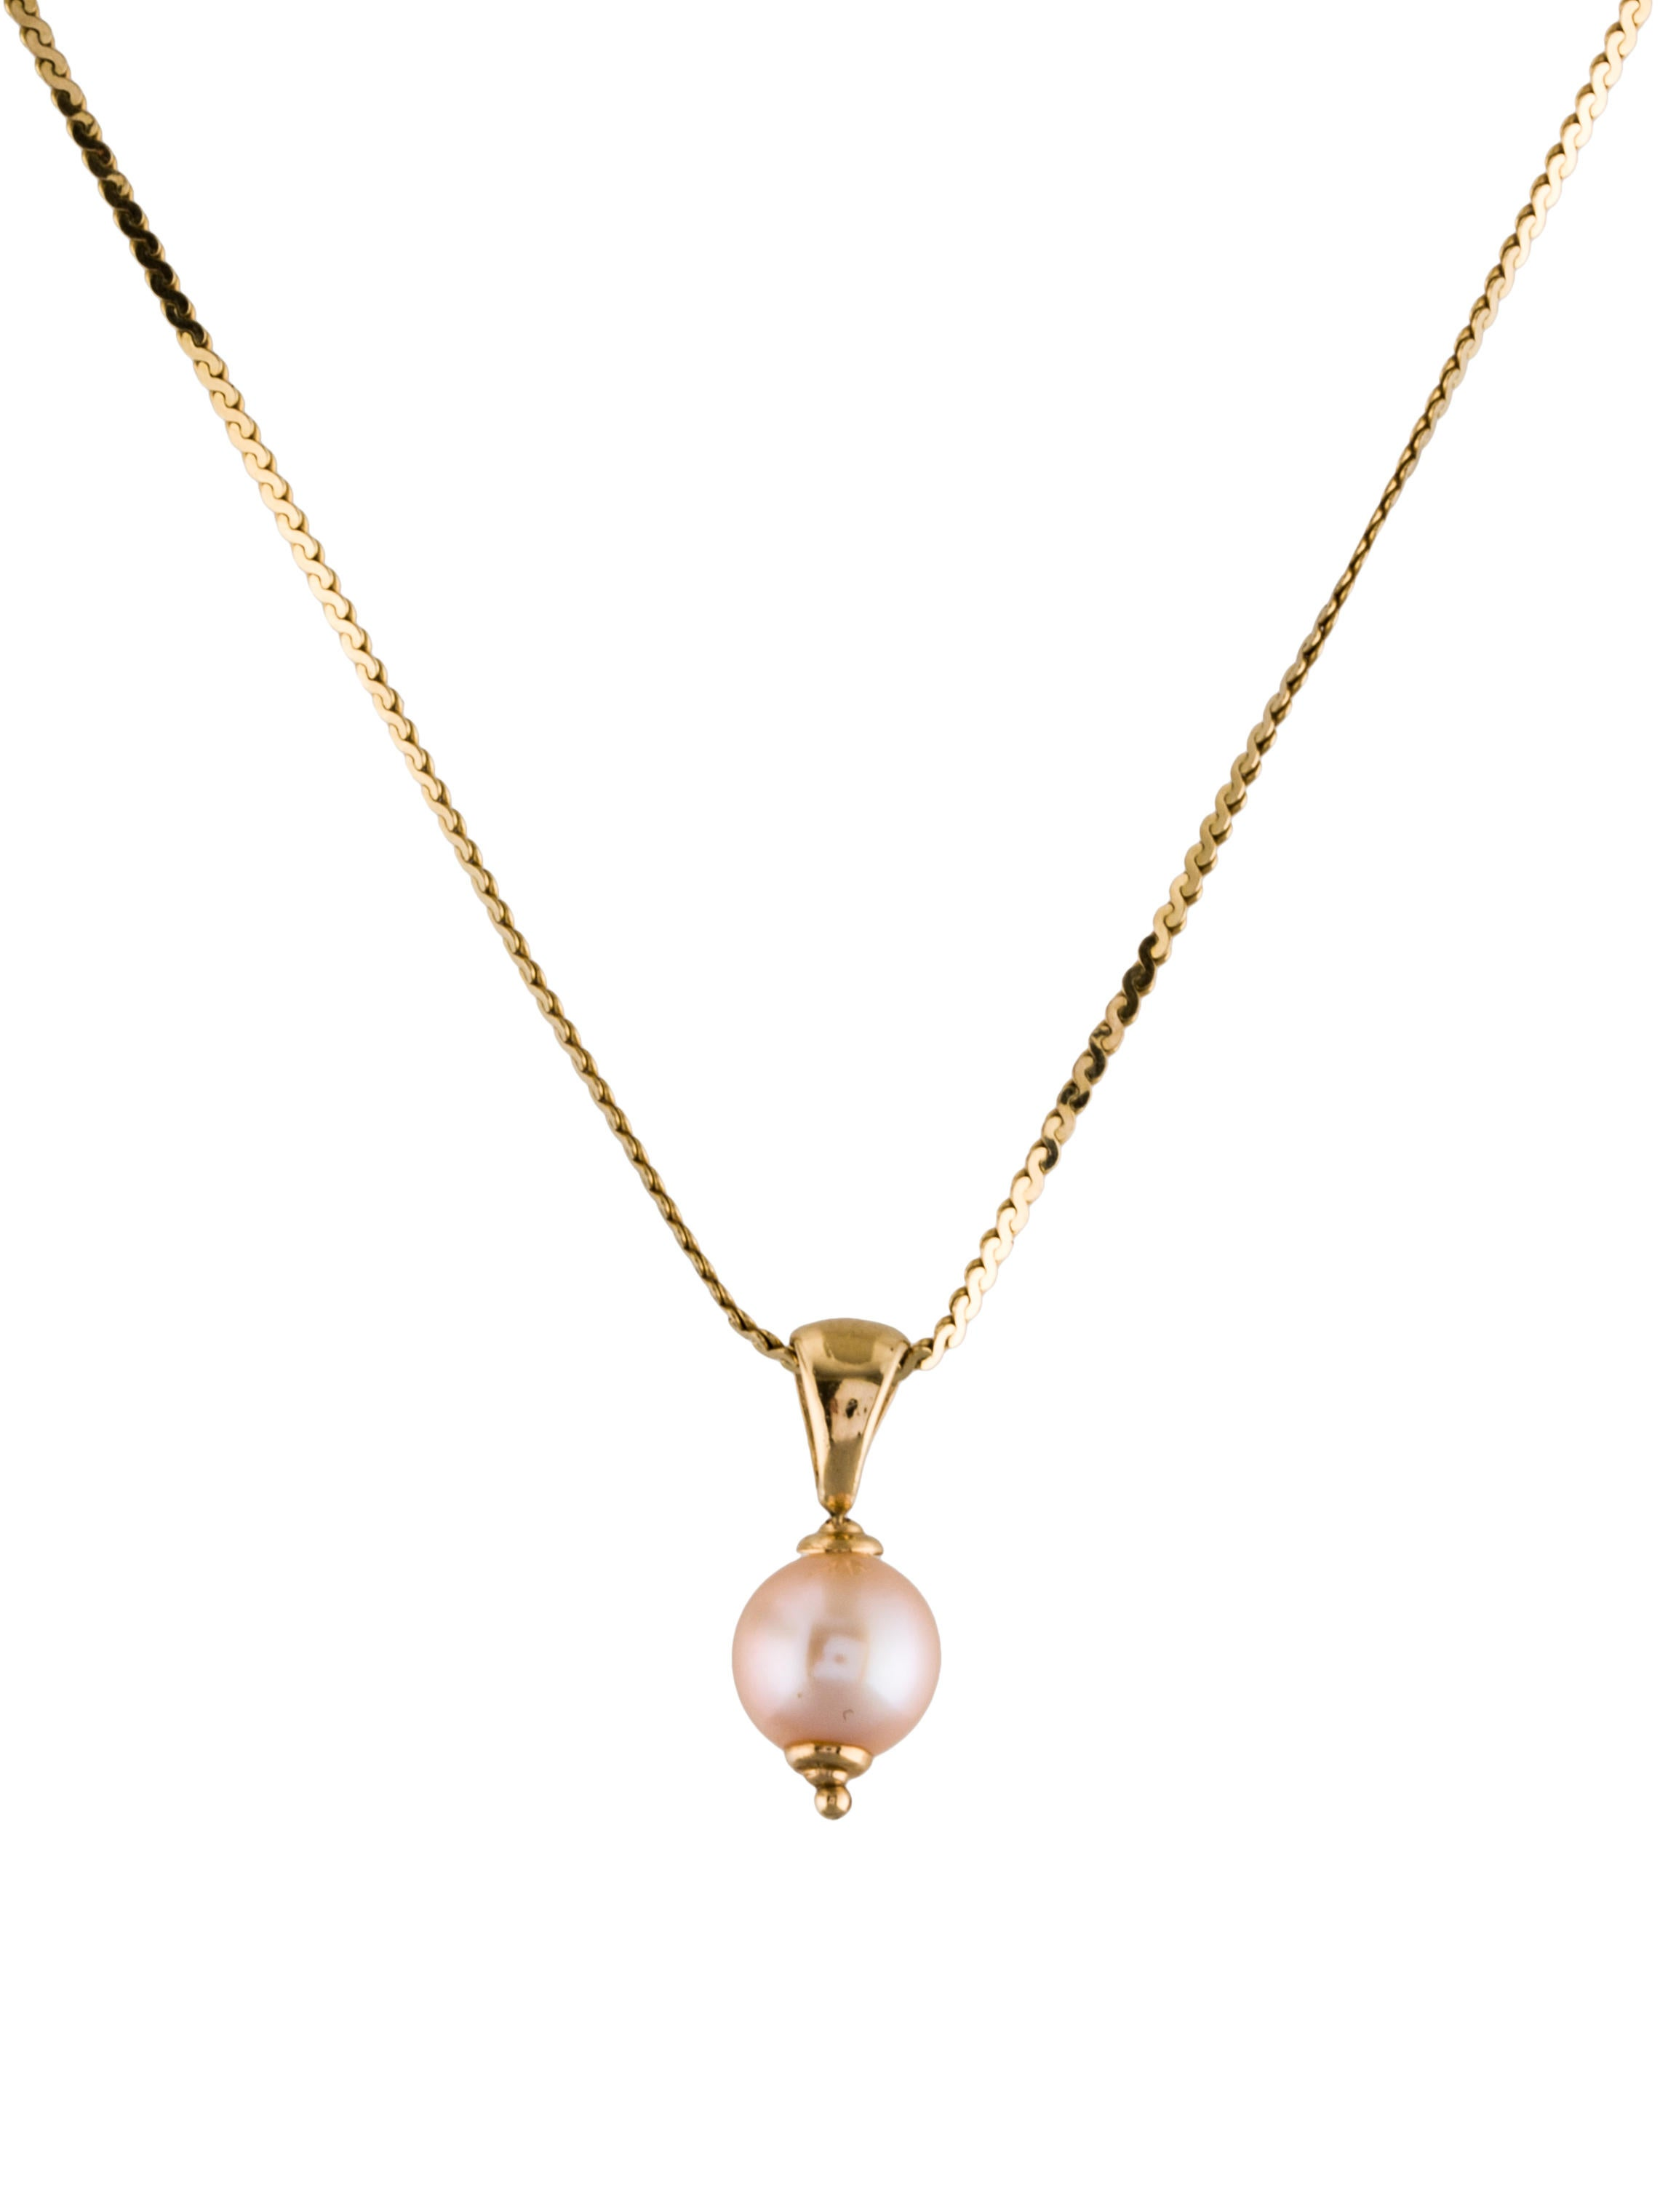 14k cultured pearl pendant necklace necklaces